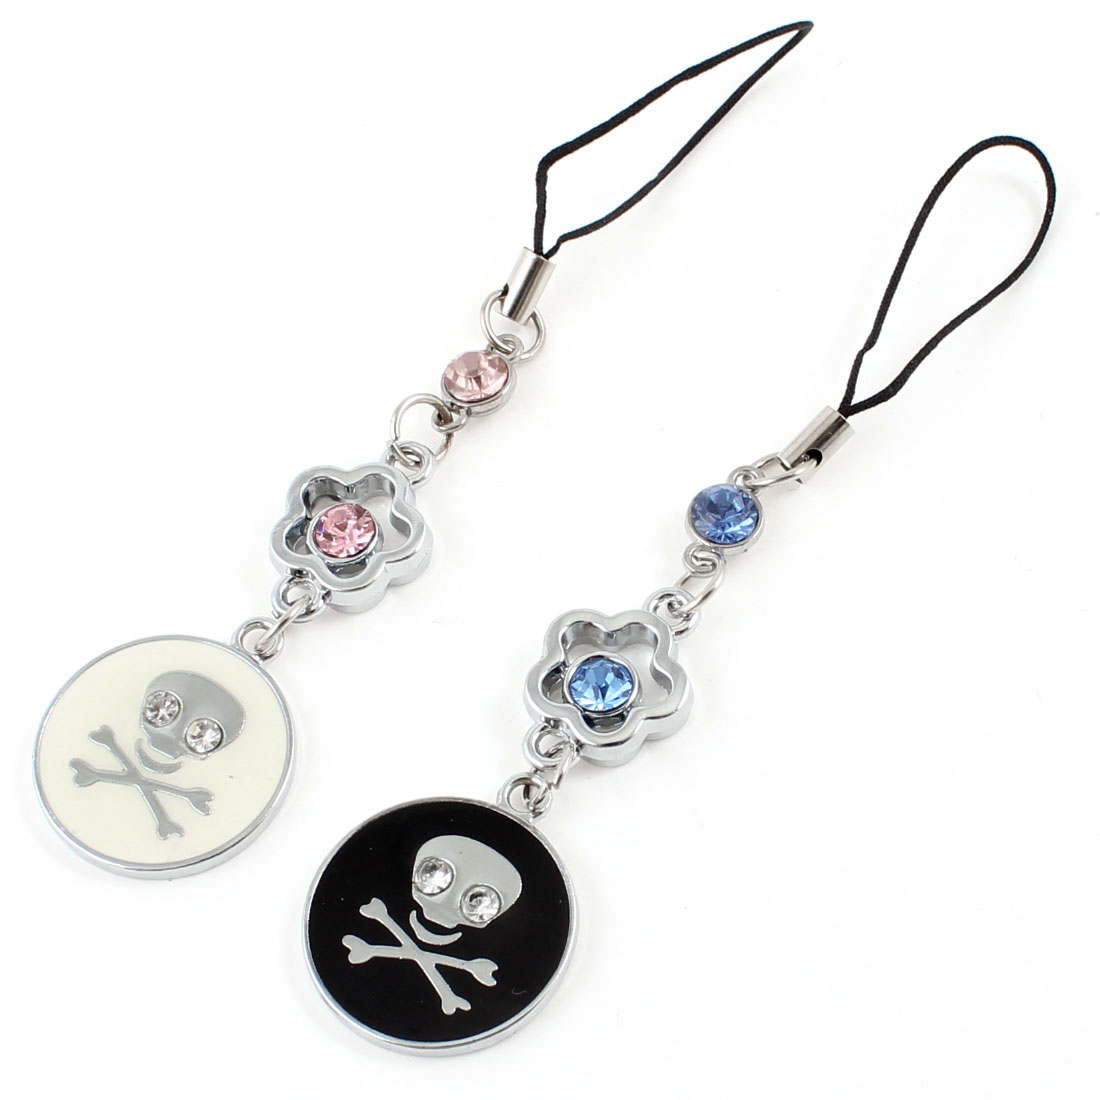 "Rhinestone Detail Round Skull Pendant Couple Cell Phone Strap 3.5"" Length"